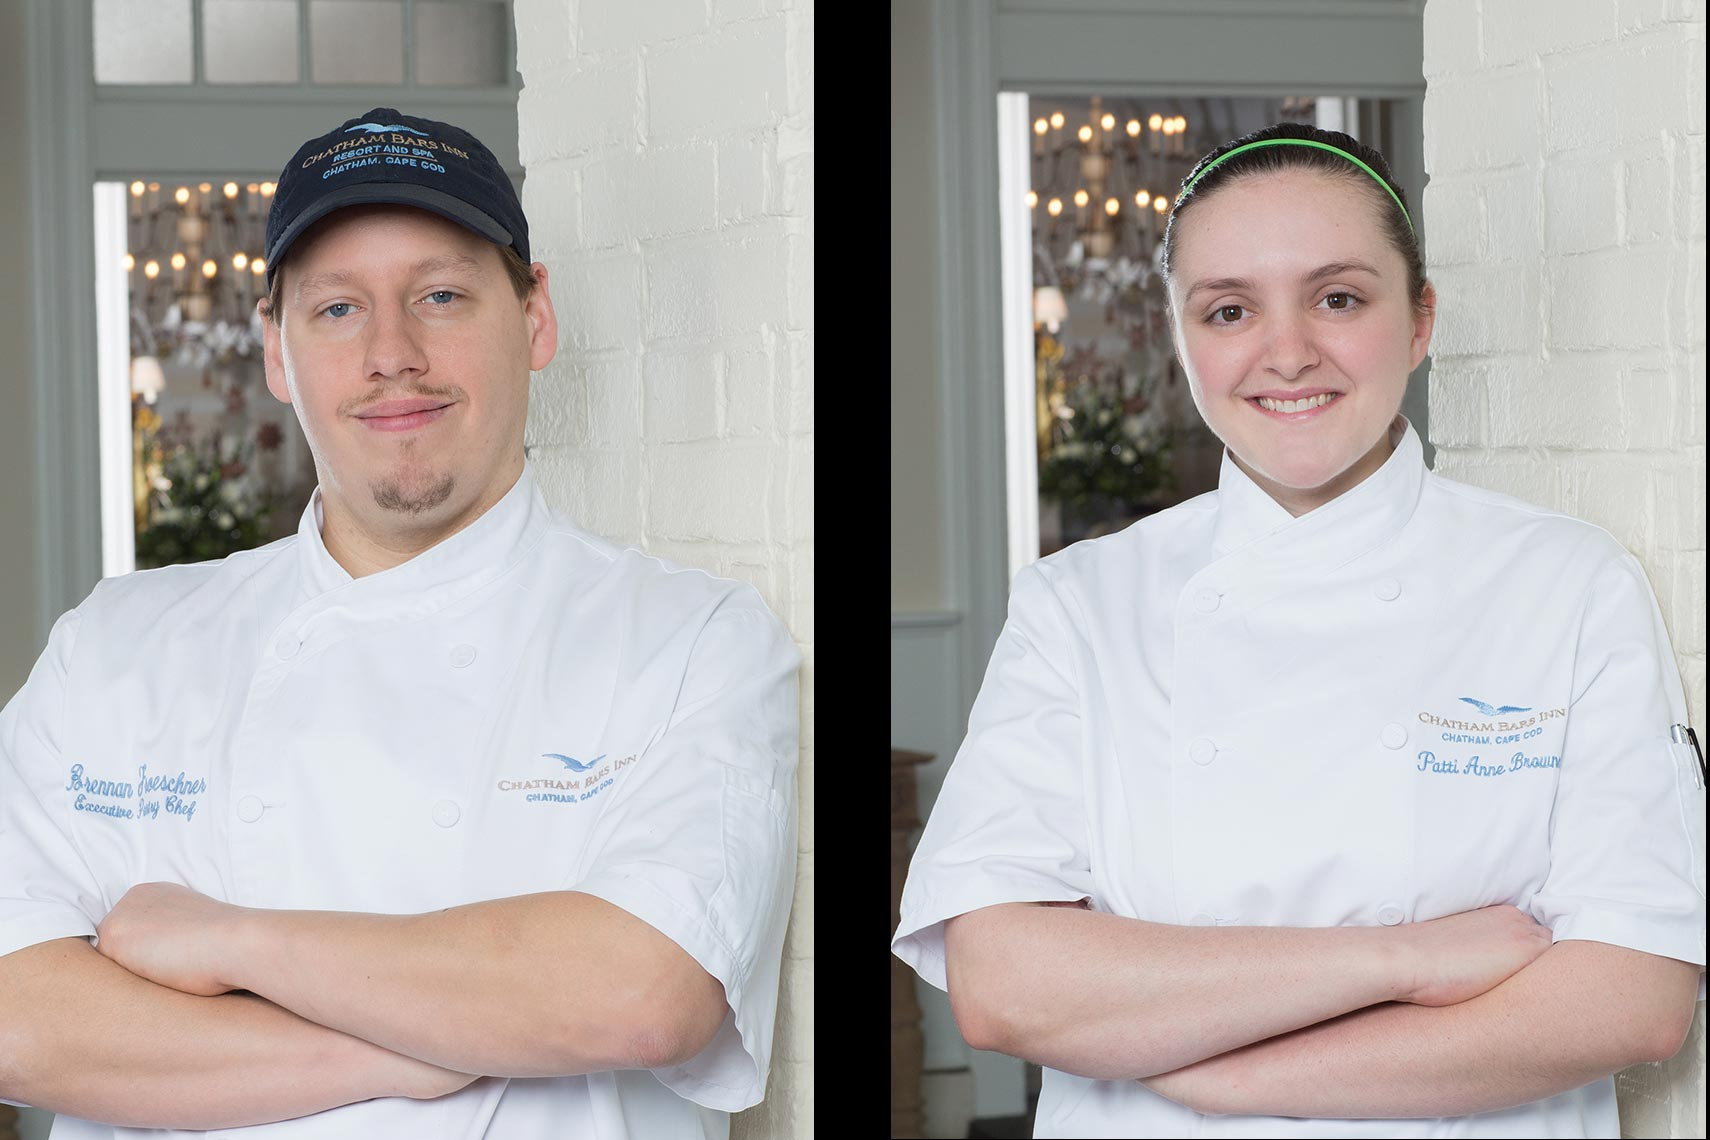 Environmental portraits of the pastry chefs of Chatham Bars Inn